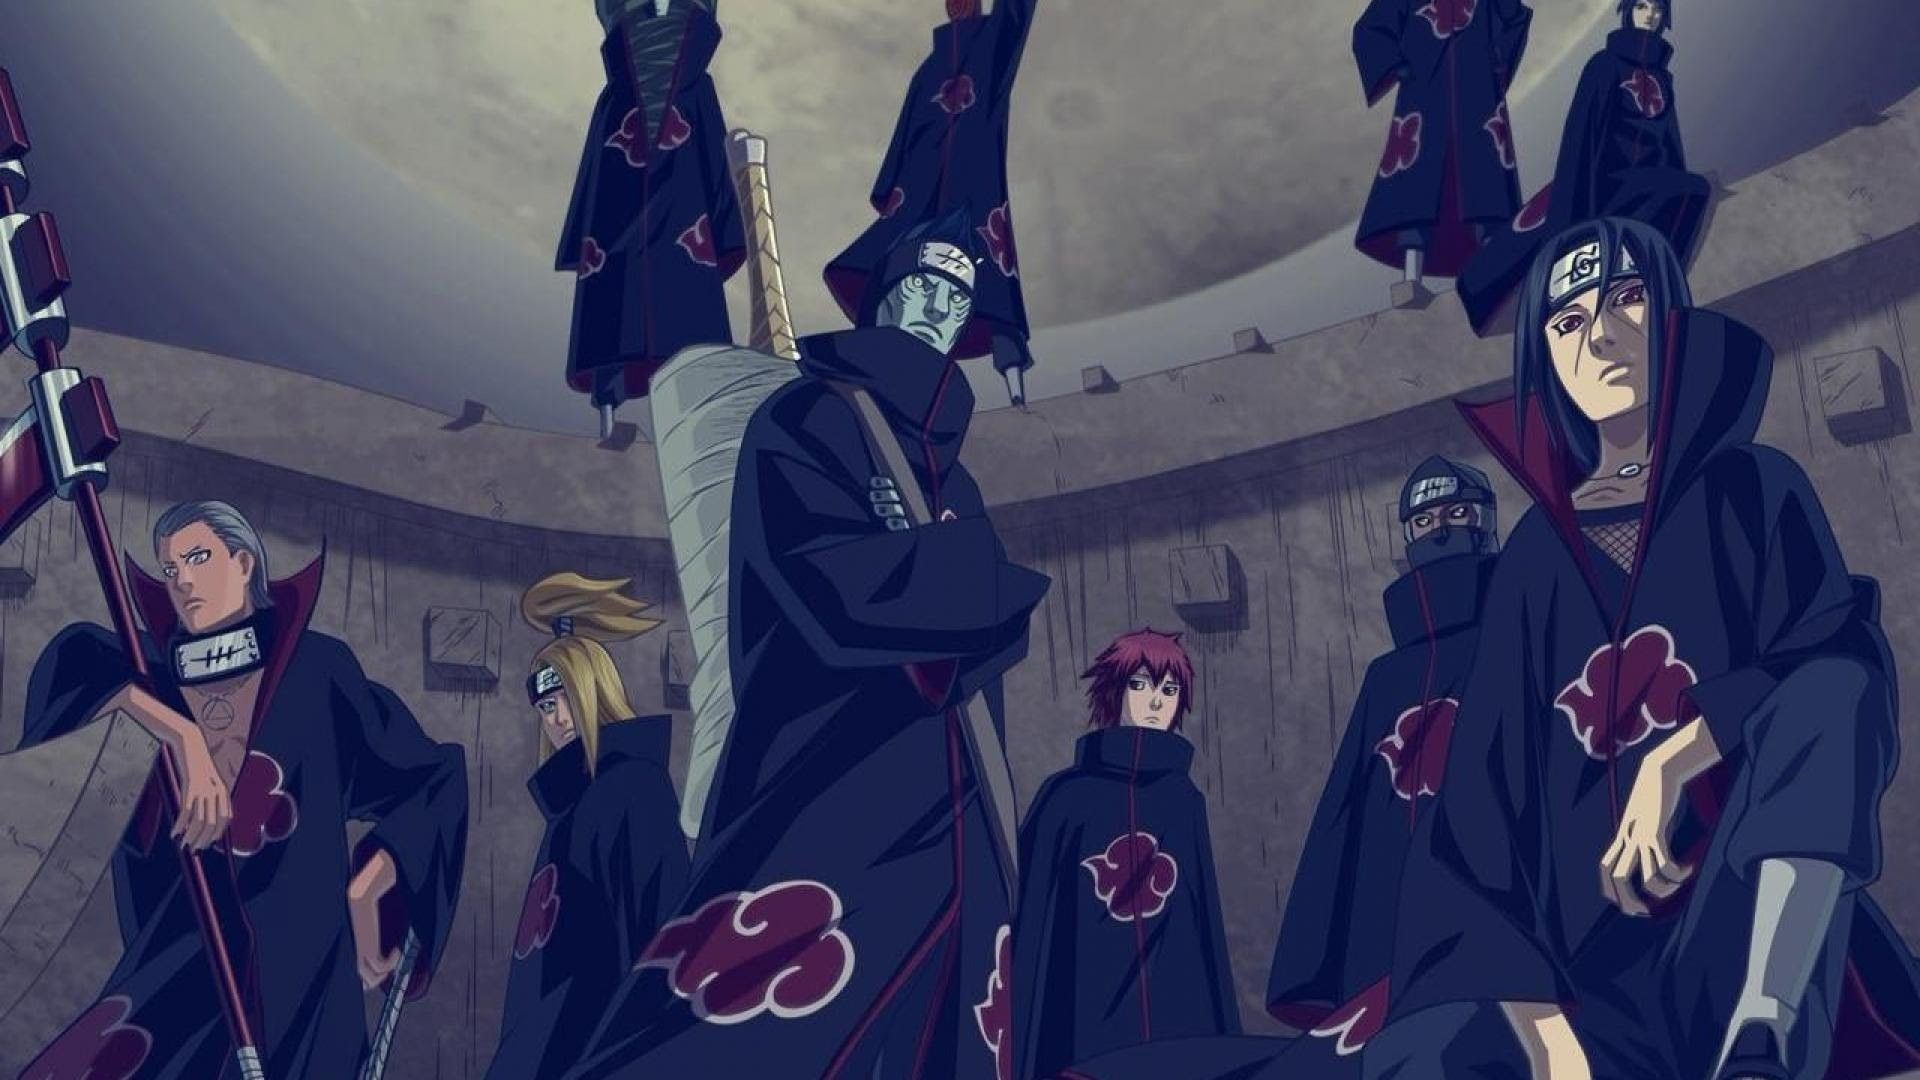 Wallpaper Naruto Shippuden 4k Naruto Shippuden Wallpaper Akatsuki Wallpapertag 1366x768 Naruto Shippu In 2020 Wallpaper Naruto Shippuden Akatsuki Hd Anime Wallpapers